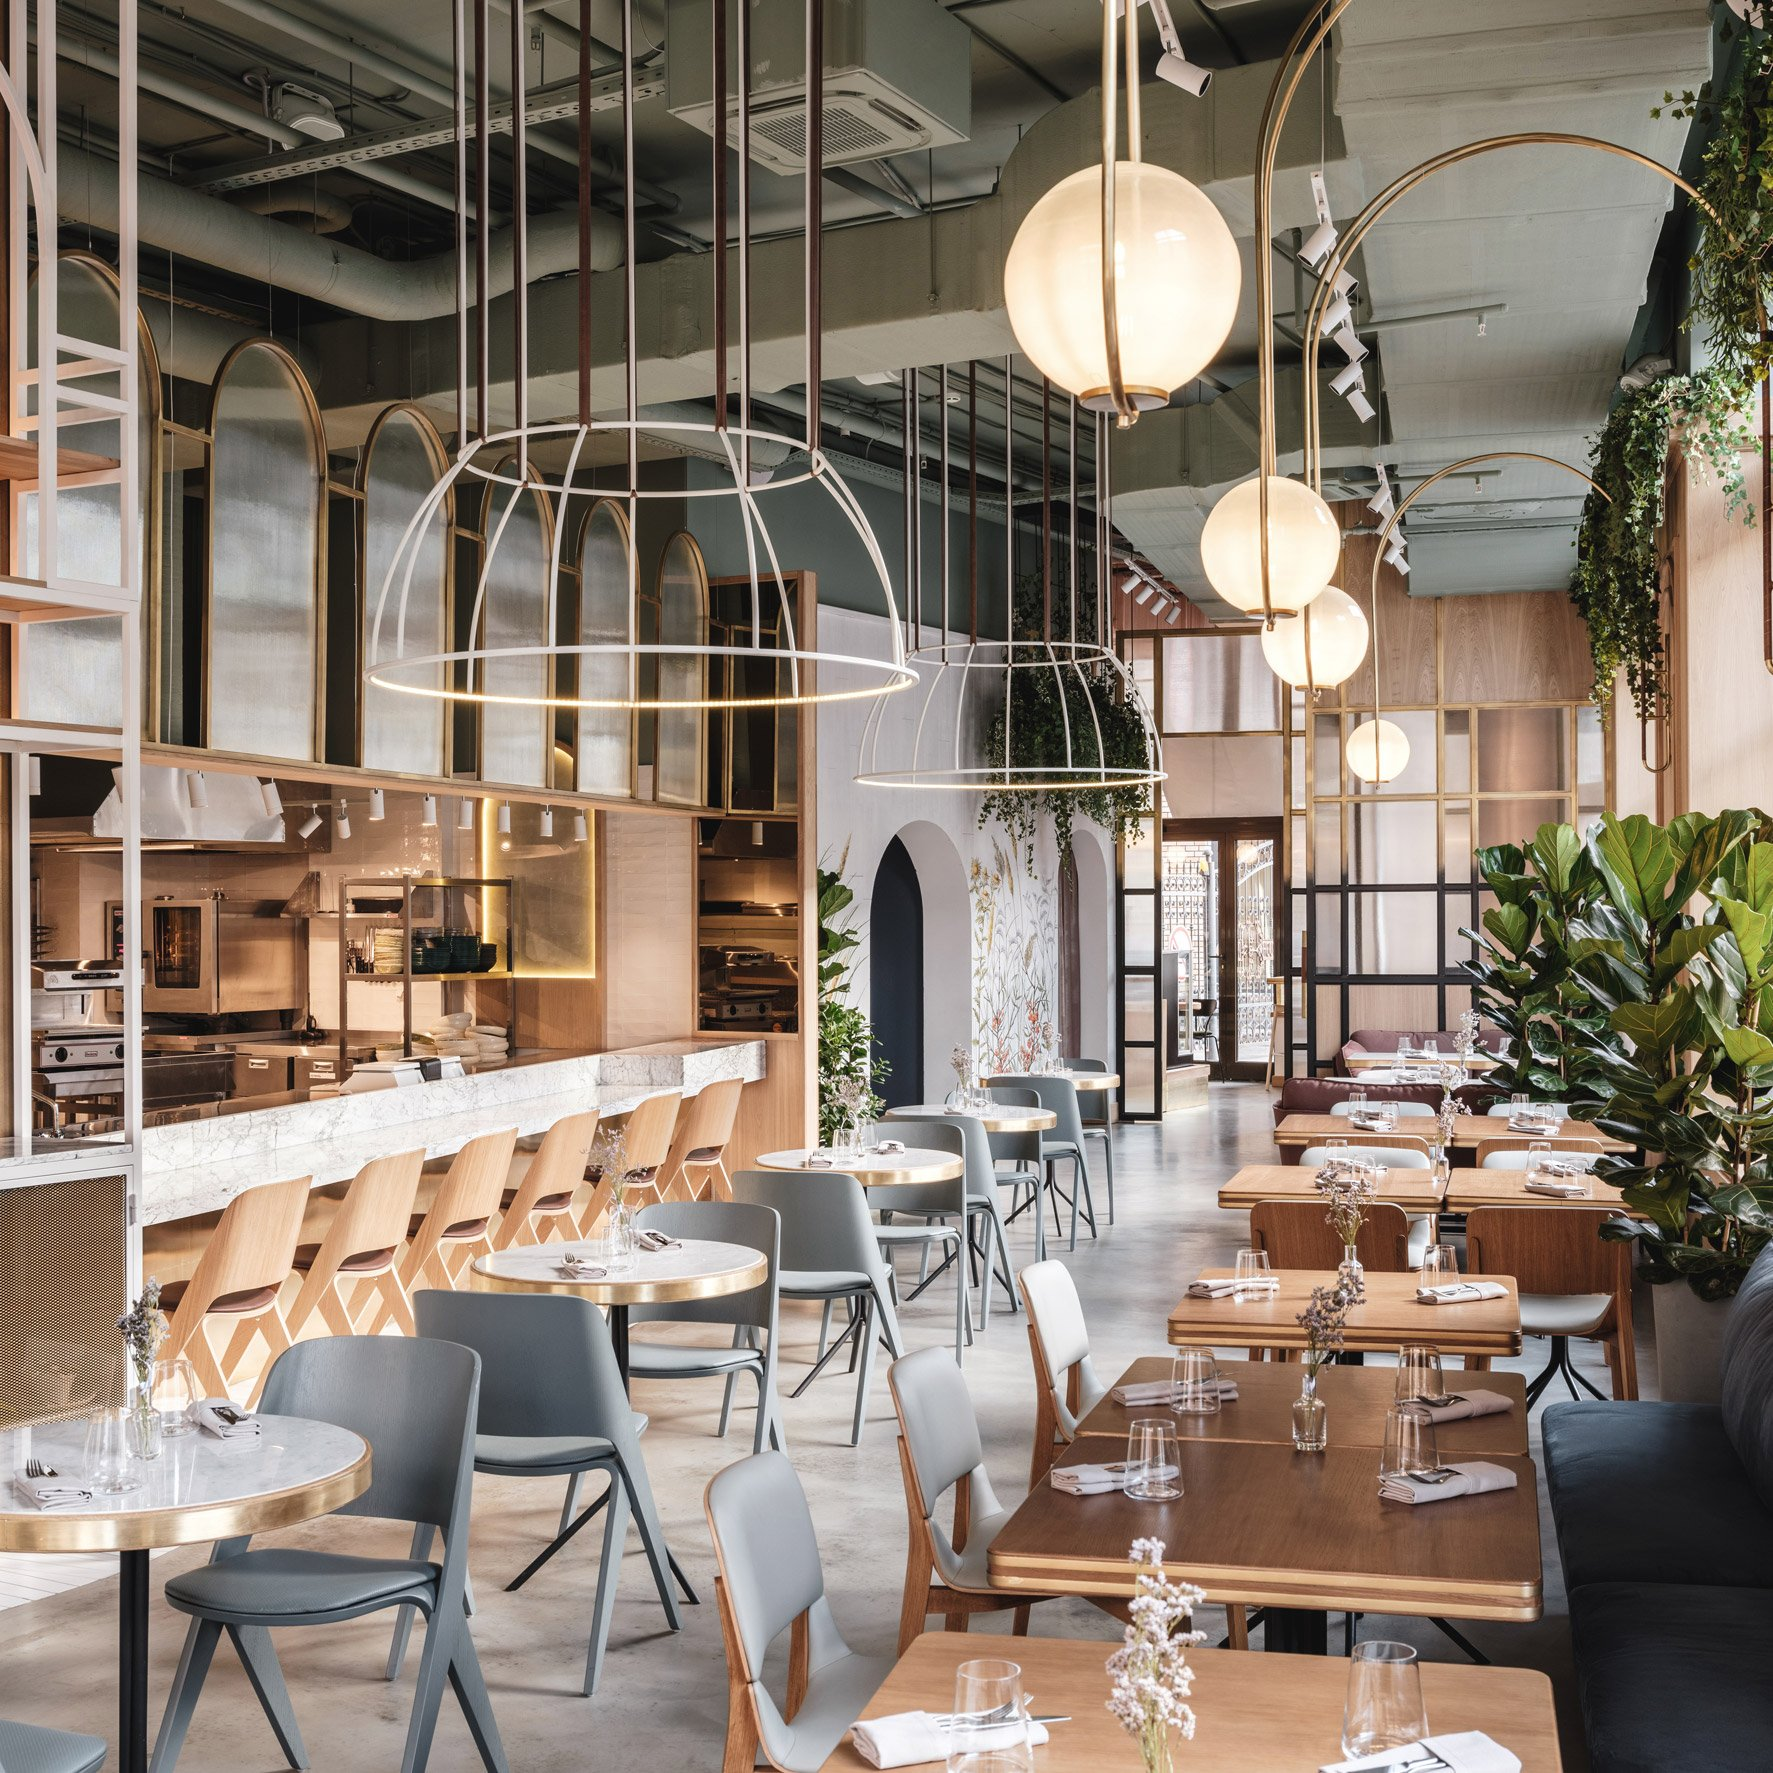 Wes Anderson Films Inform Design Of Moscow Restaurant By